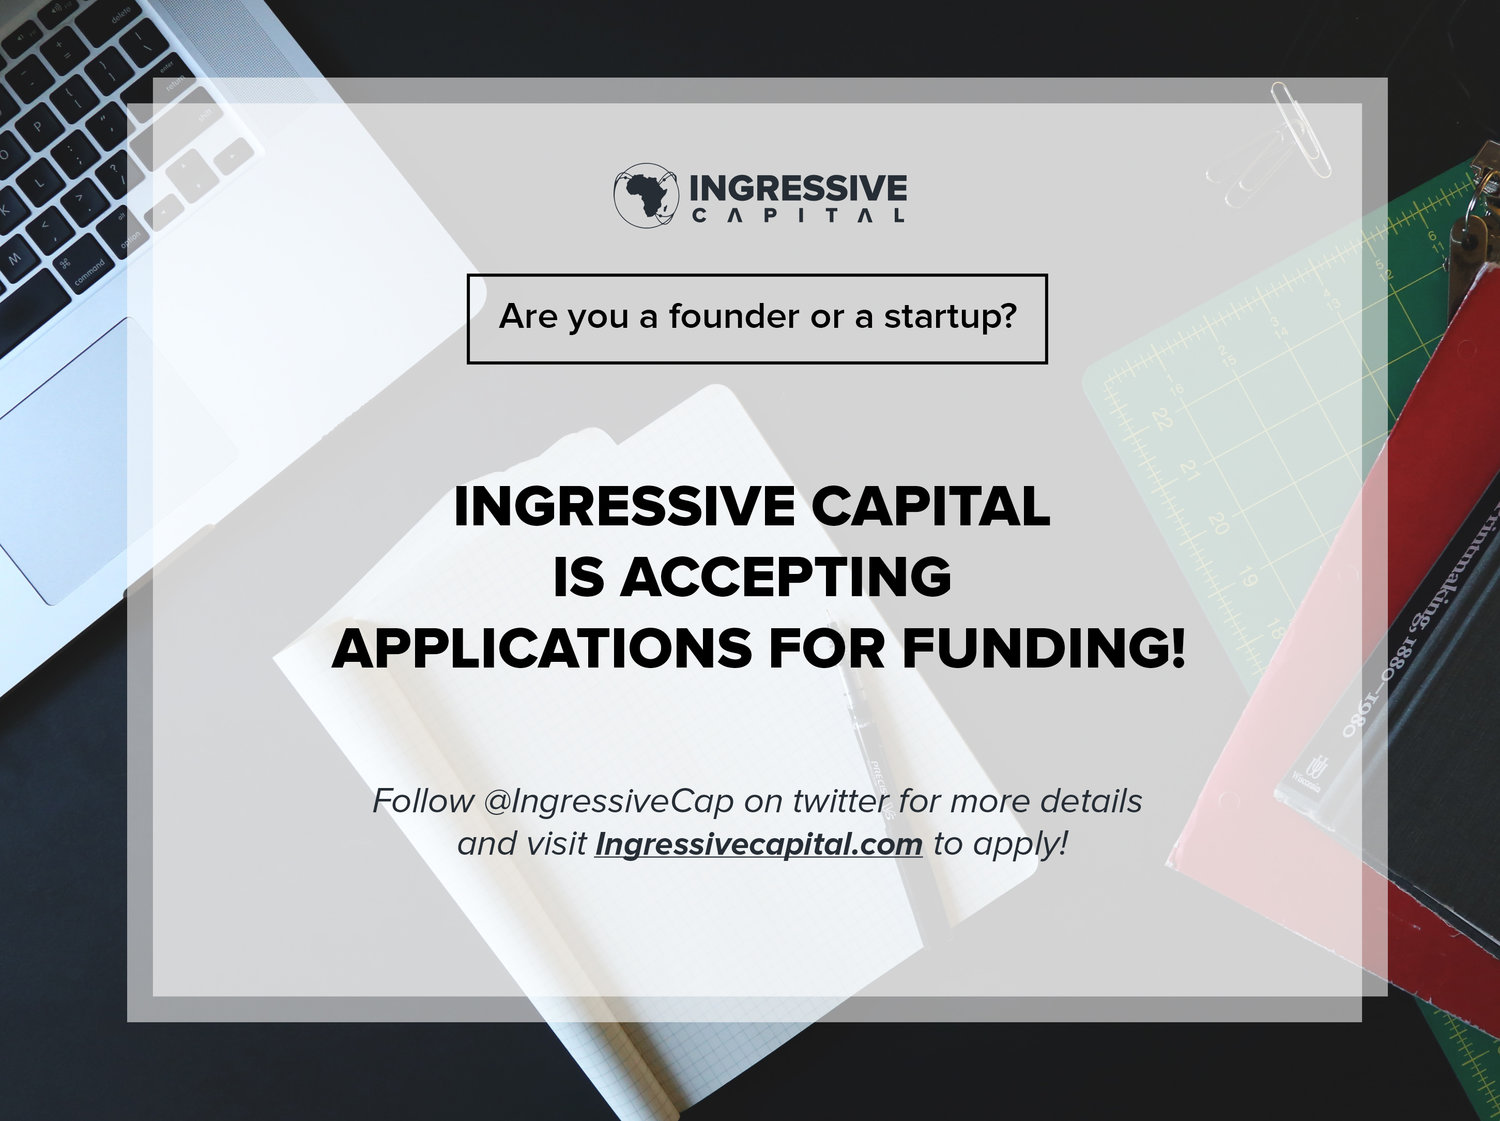 7ba460805e INGRESSIVE CAPITAL FUND FOR AFRICAN TECH ENABLED STARTUPS